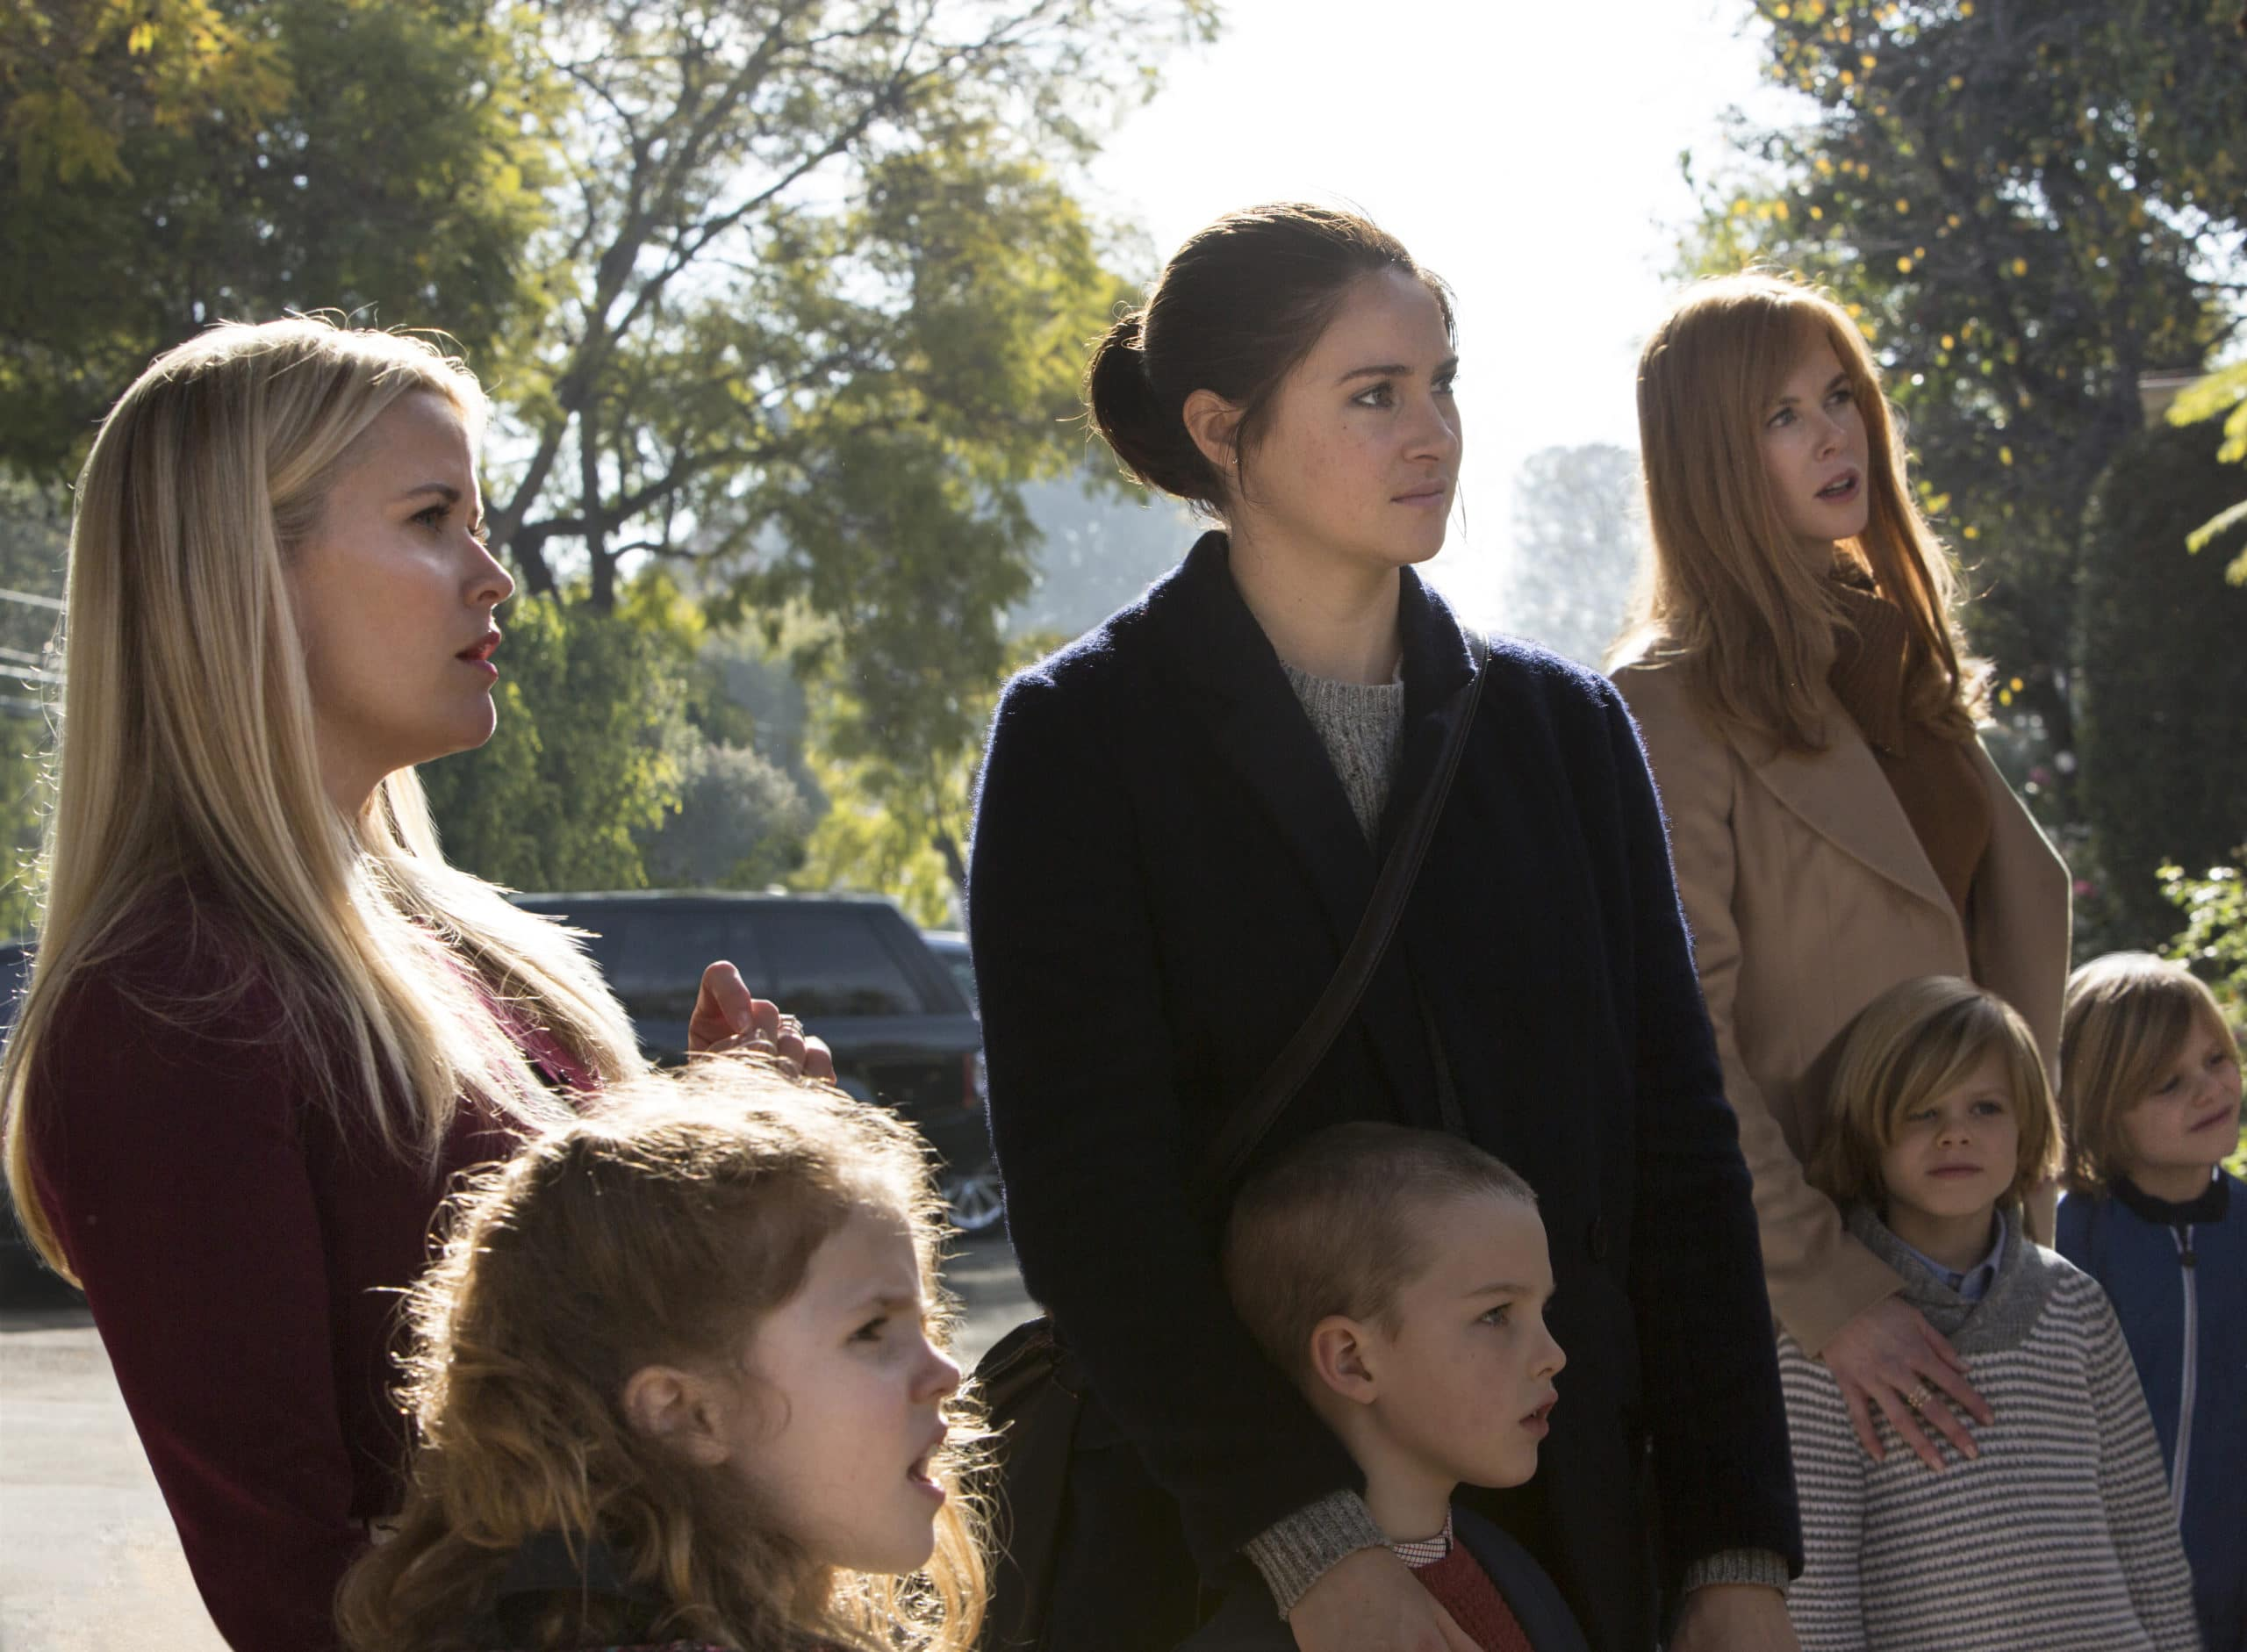 Big Little Lies. Instead of getting down and out about having to shelter in place away from your girl squad, have agirls night inand get lost in these Top 10 binge worthy female-centric TV series that have strong female leads and will give you the girl-power you have been missing!